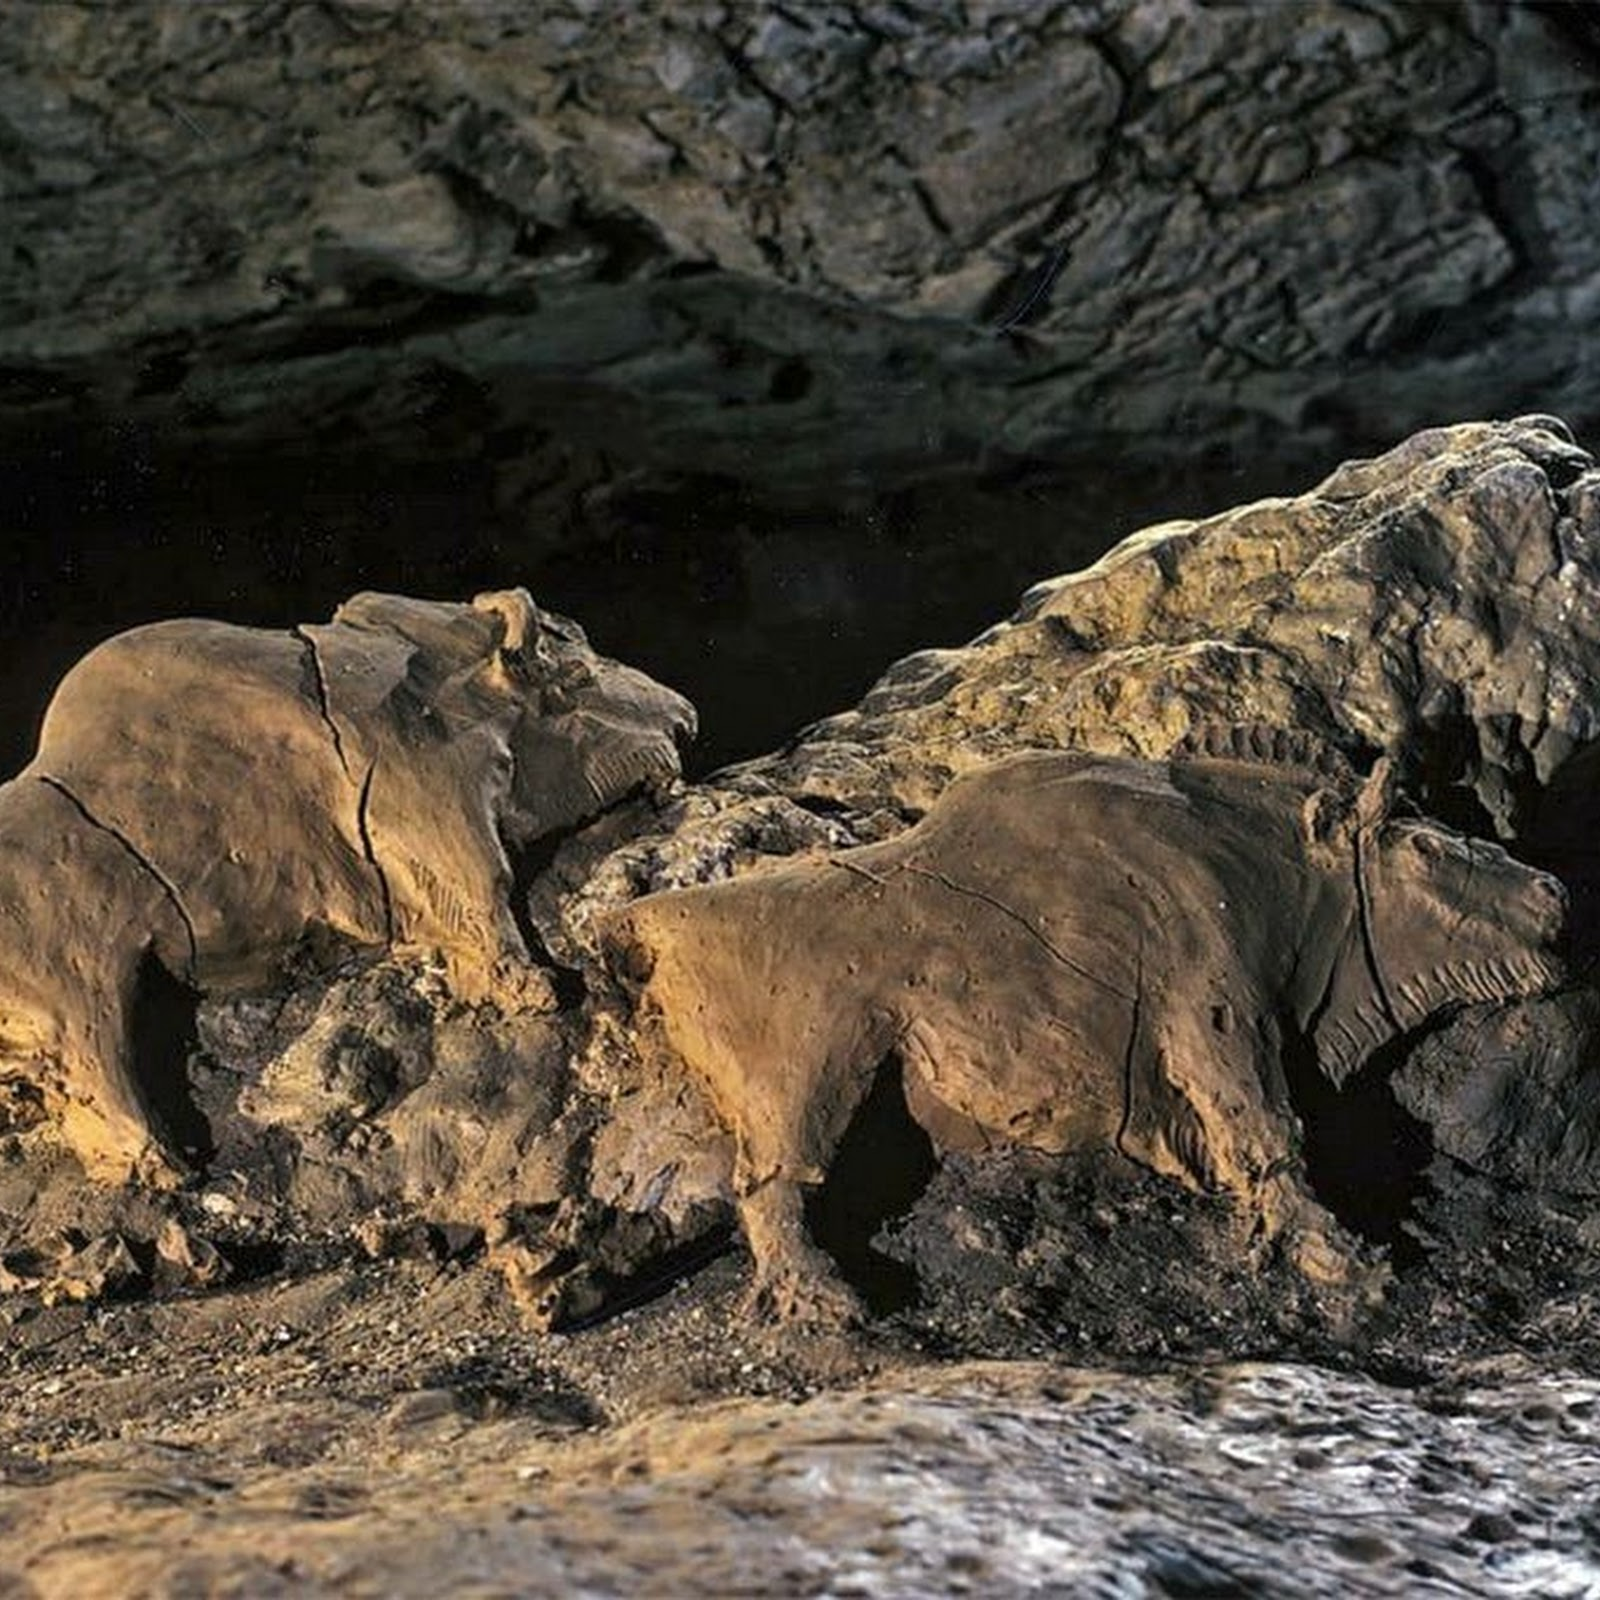 15,000-Year-Old Bison Sculptures at Tuc D'Audoubert Cave